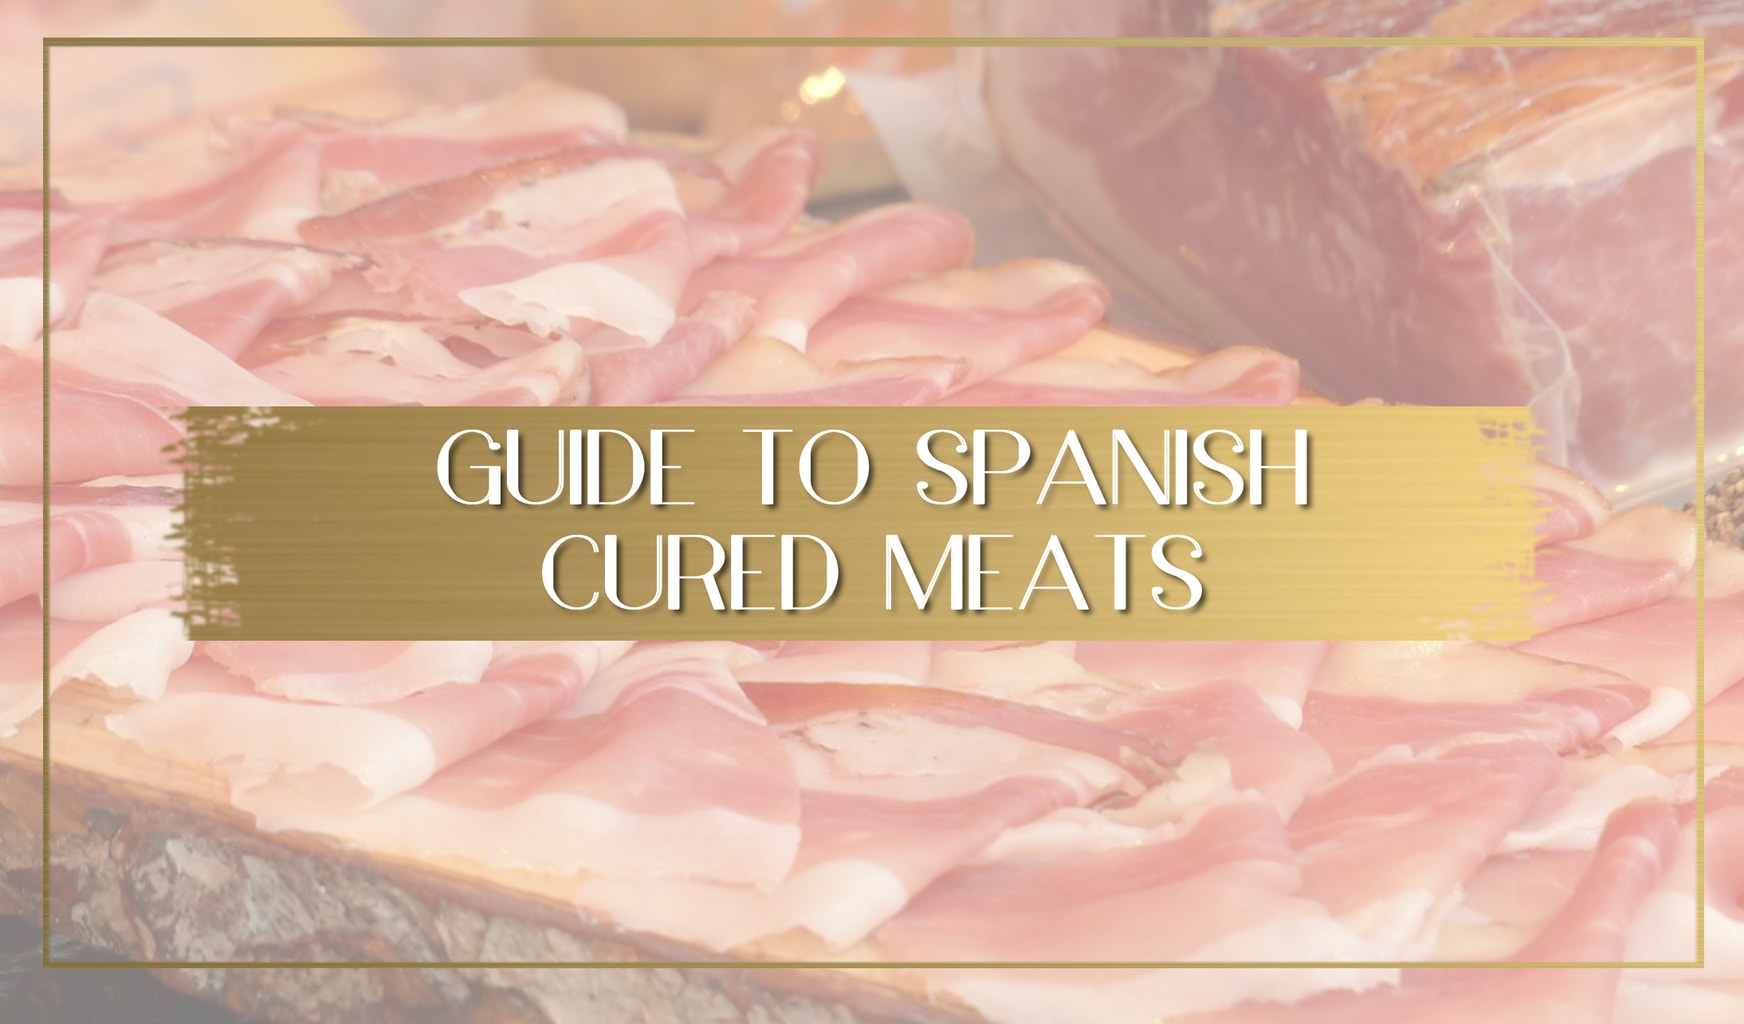 Guide to Spanish cured meats main